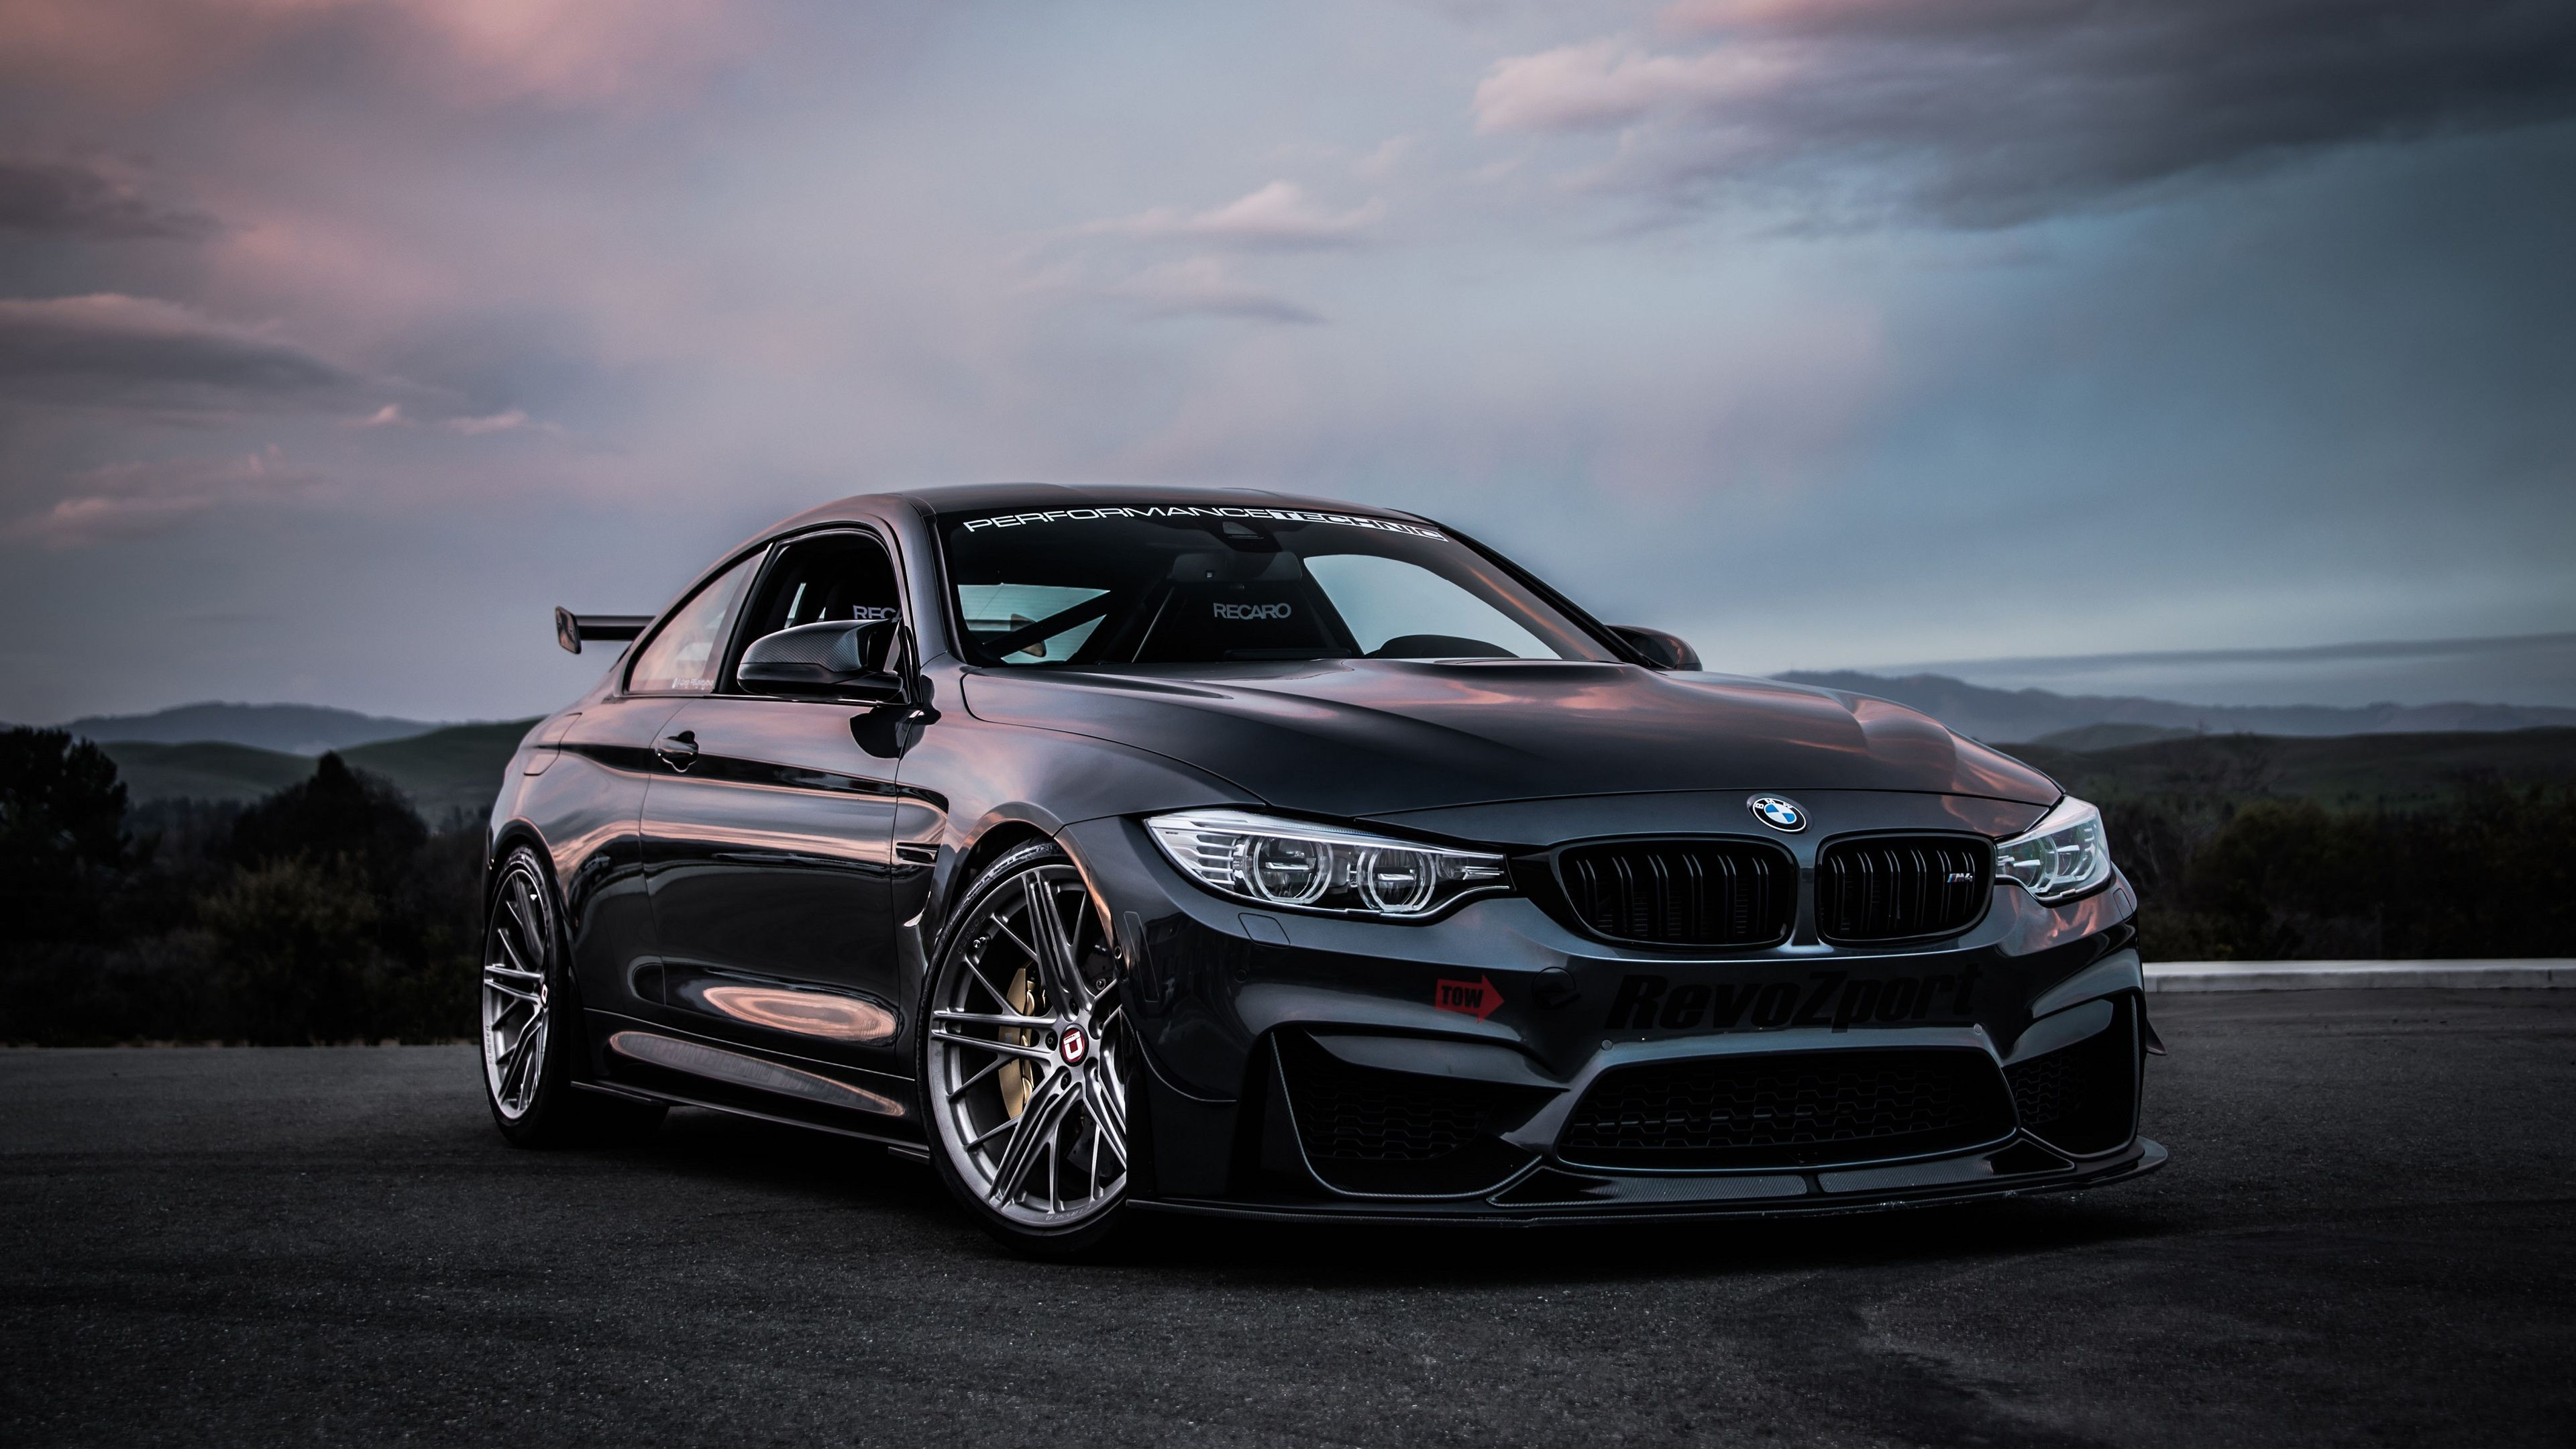 Bmw wallpapers high quality bmw backgrounds vdg